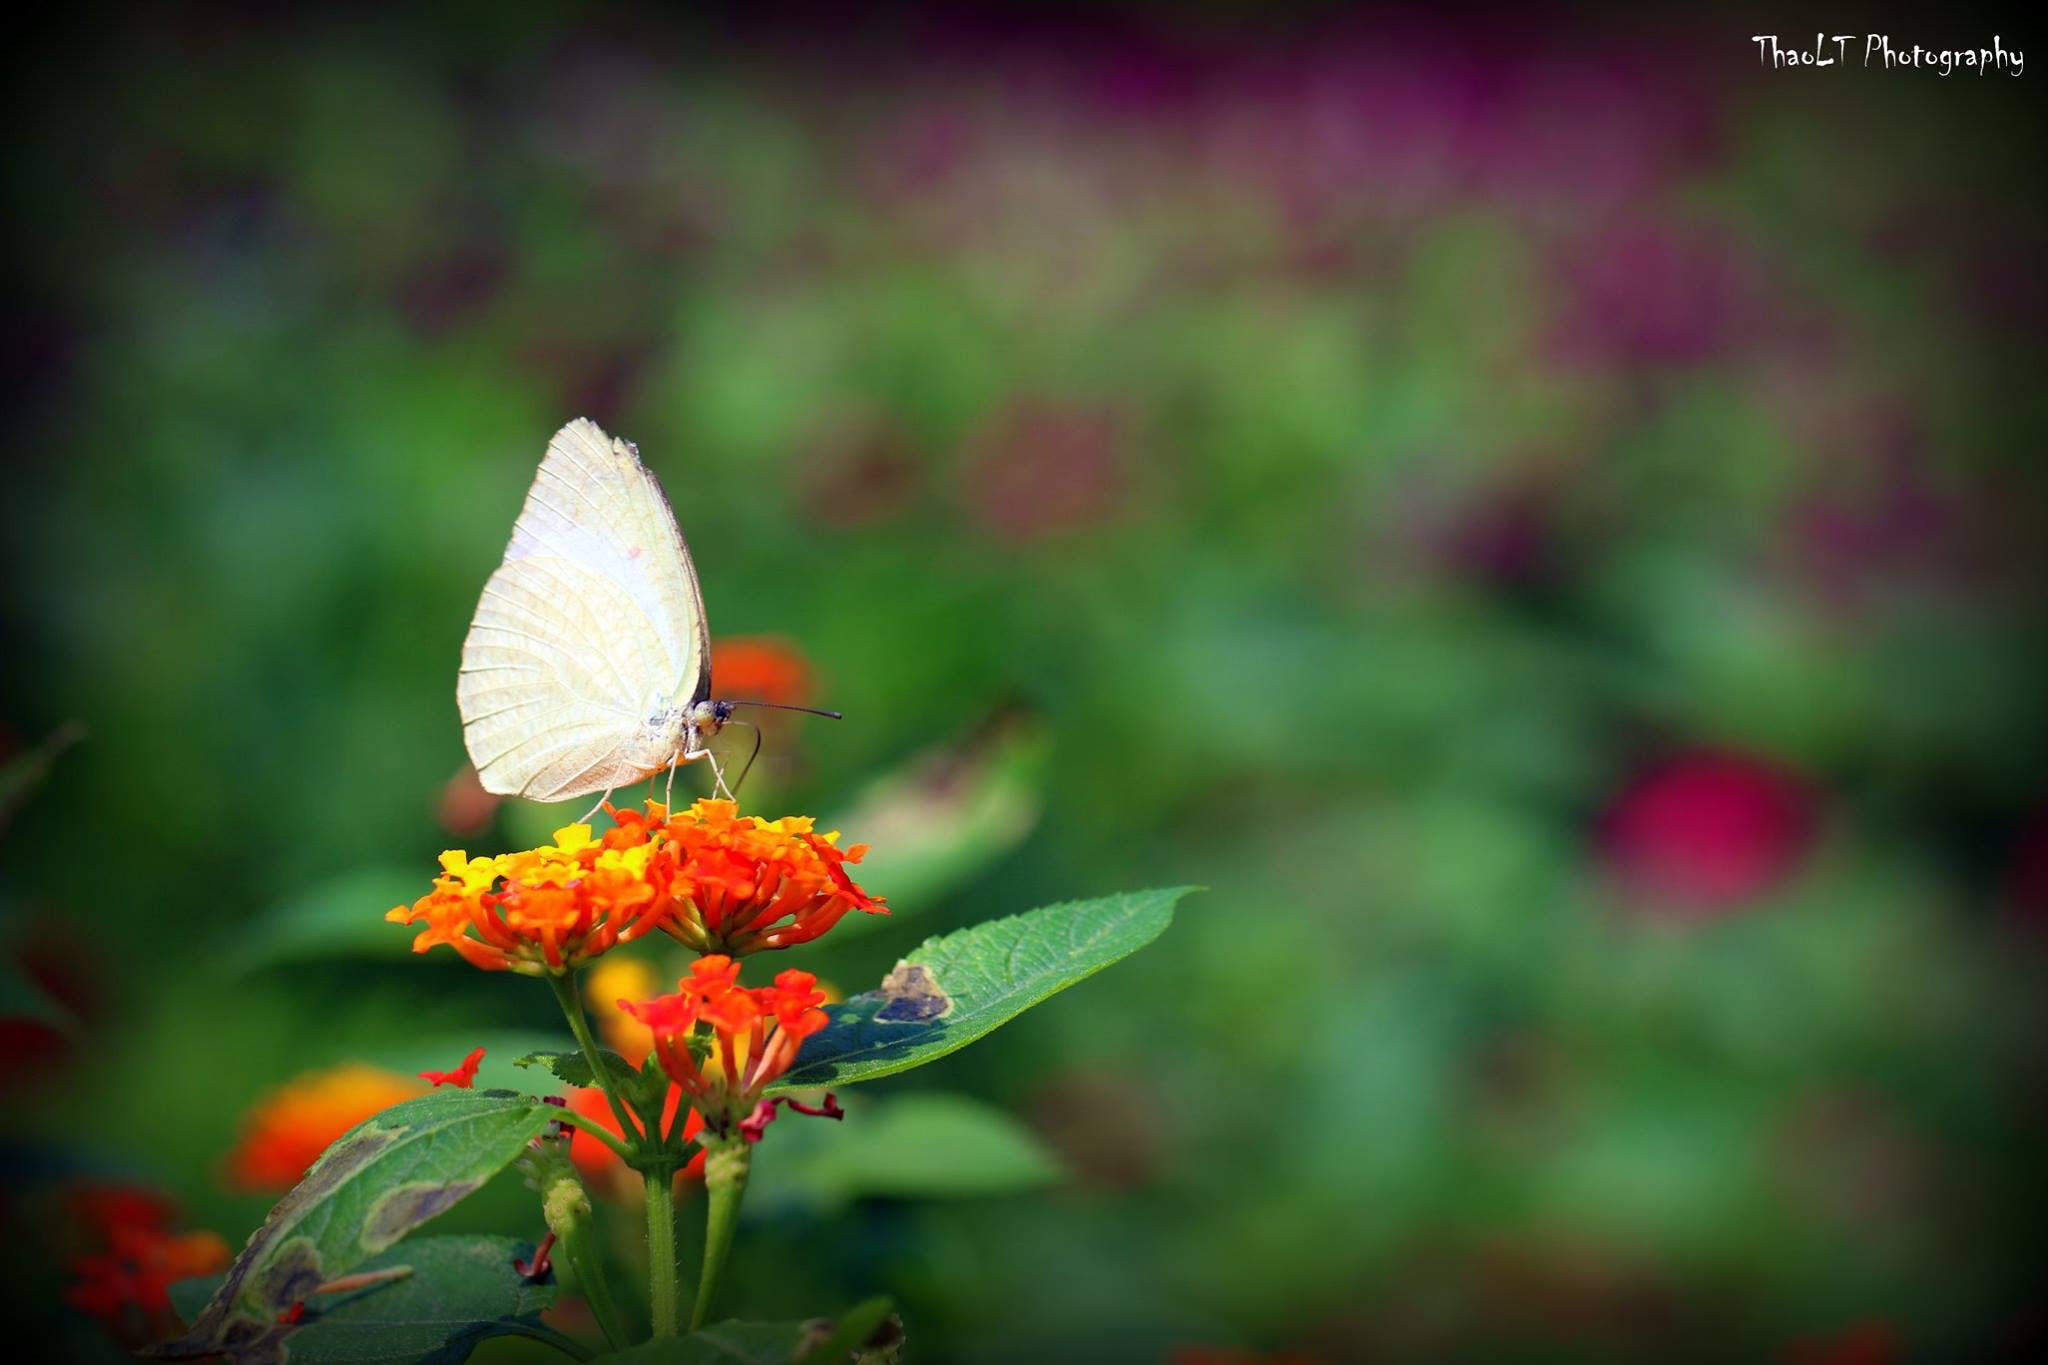 Free stock photo of animal, beautiful flowers, butterfly, Luong Thanh Thao